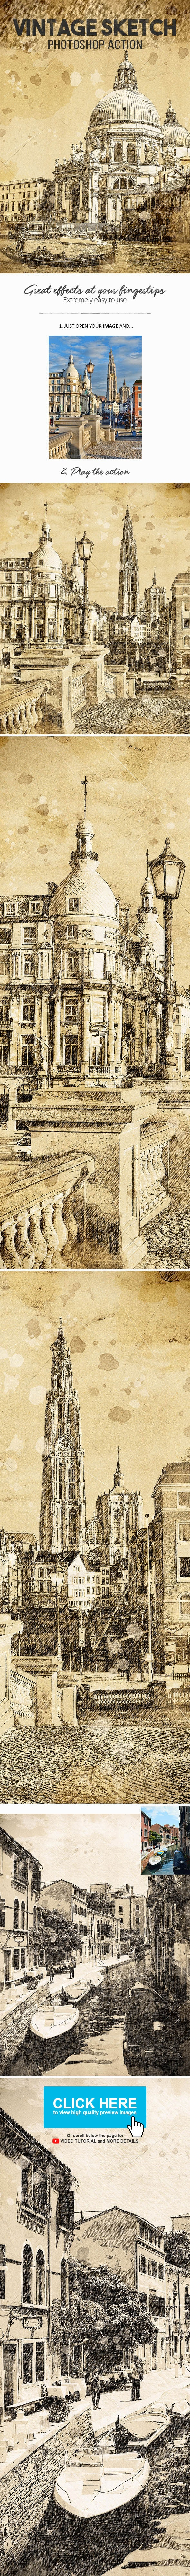 Vintage Sketch Photoshop Action - Photo Effects Actions